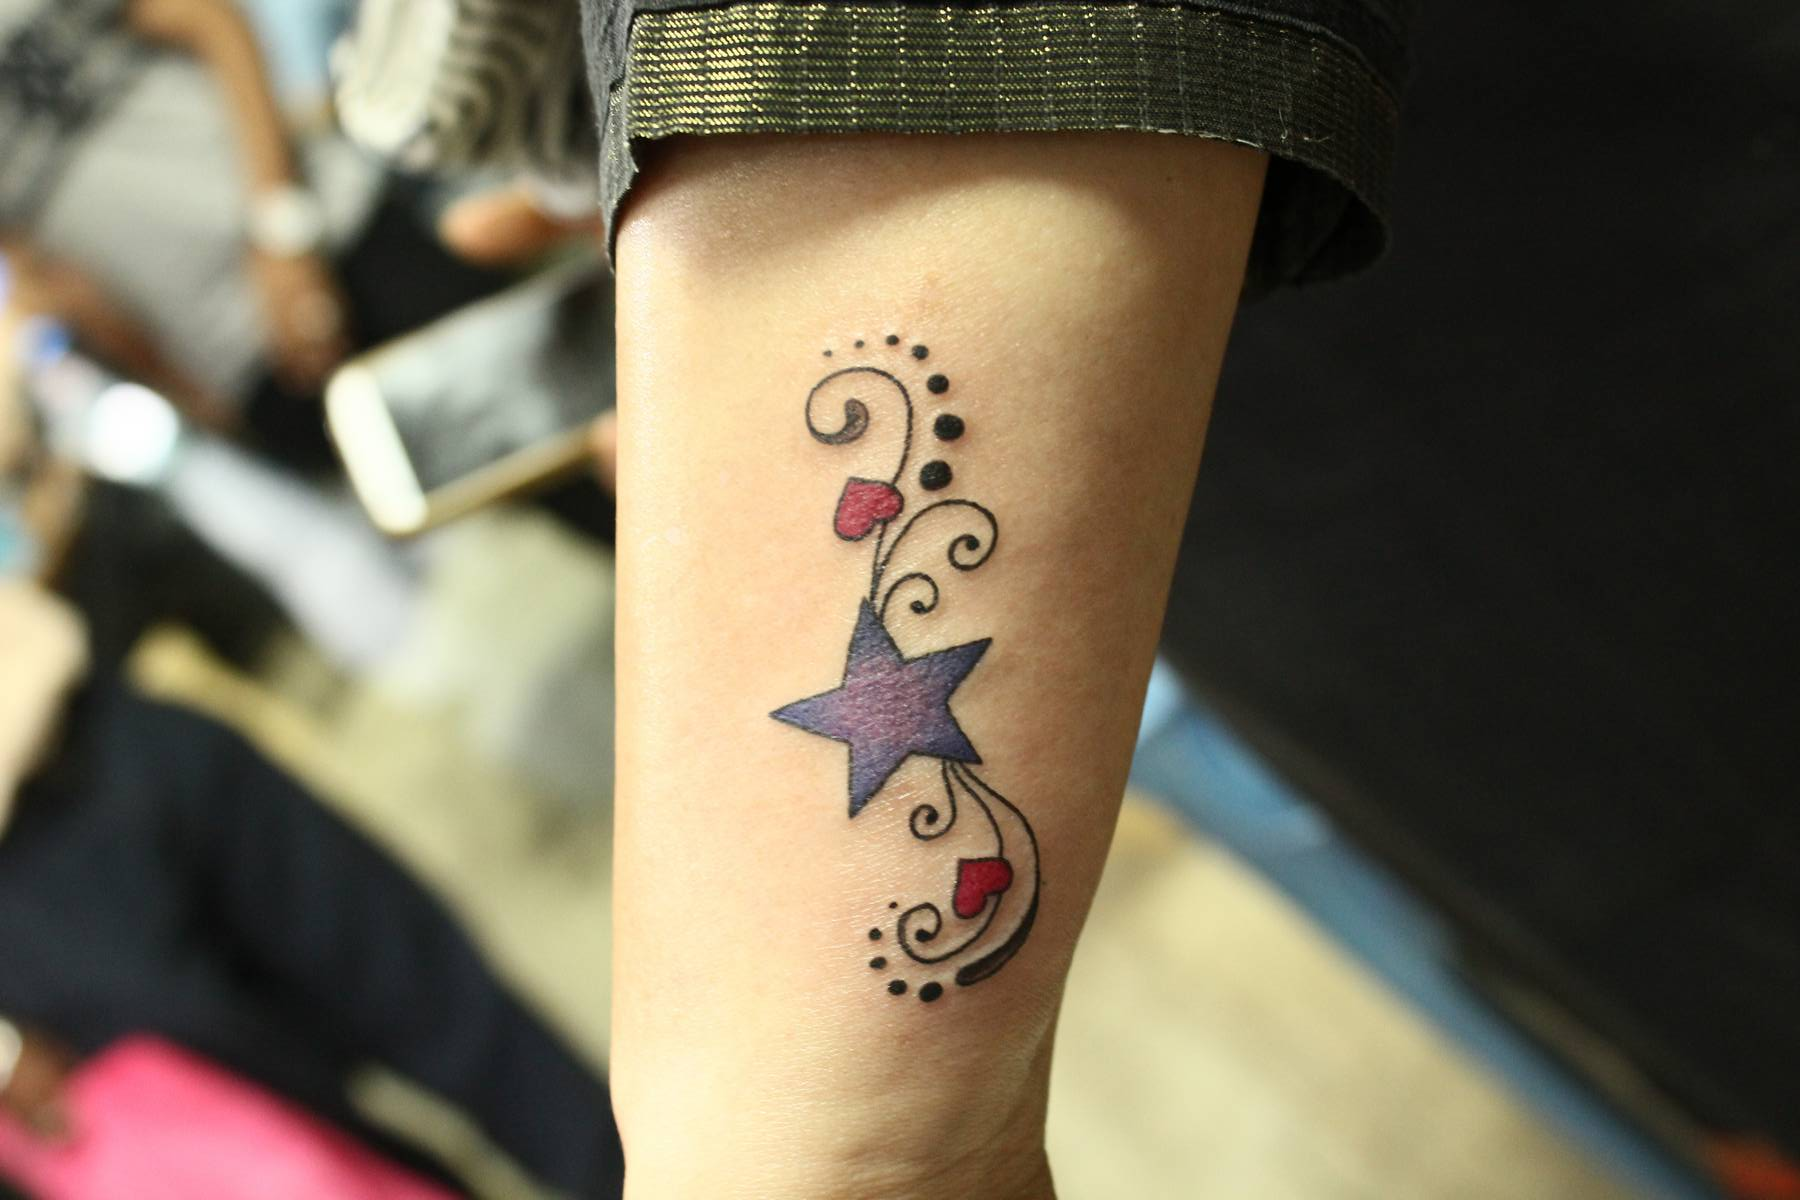 Home Tattoos 40 Beautiful Tattoos for Girls Latest Hottest Tattoo Designs 40 Beautiful Tattoos for Girls Latest Hottest Tattoo Designs